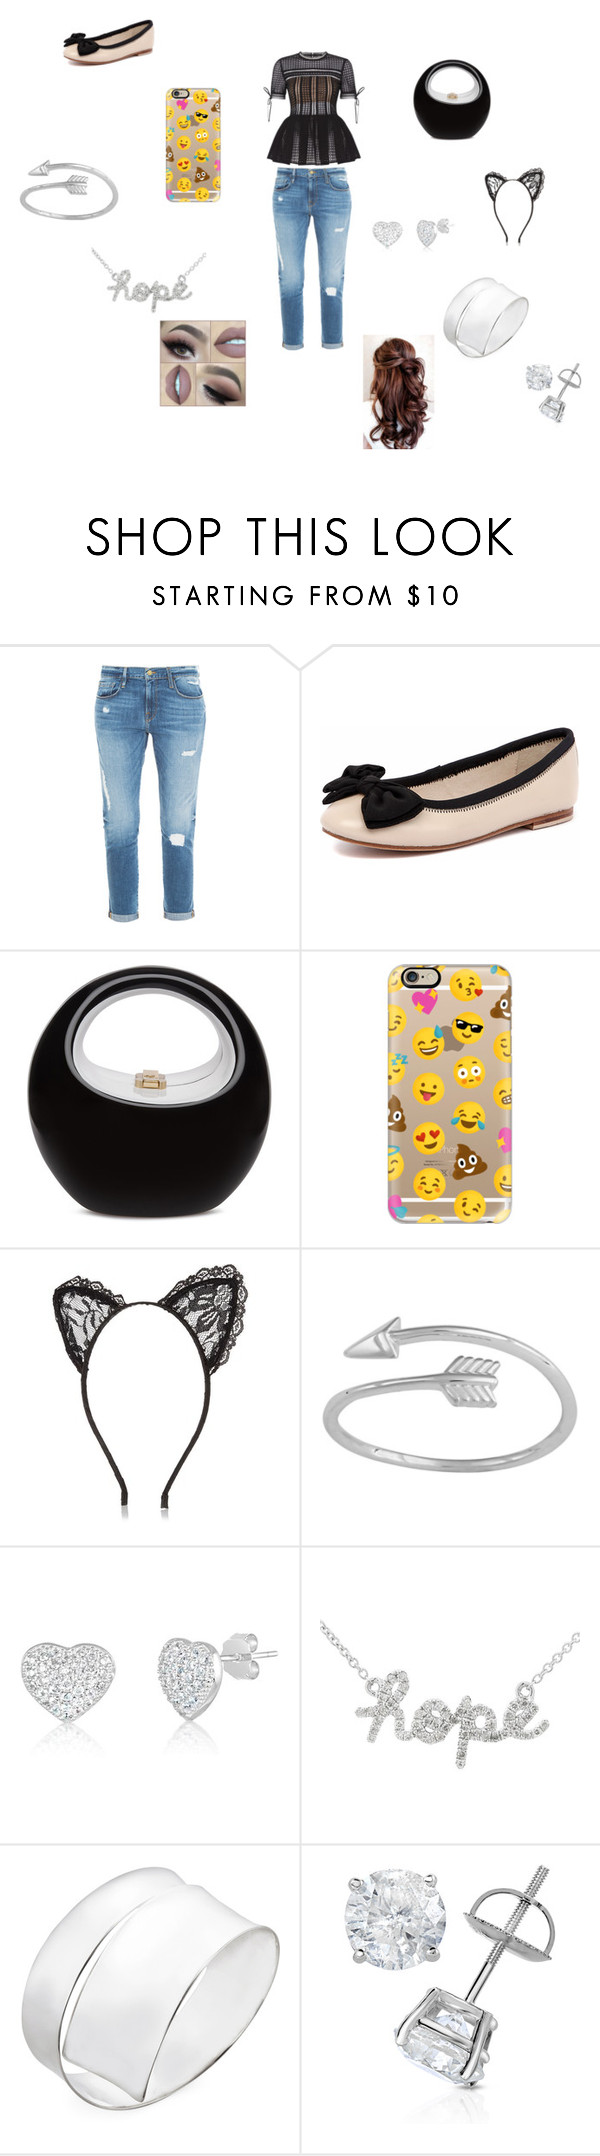 """mall time"" by vyesica-yv on Polyvore featuring Frame Denim, Human Premium, Casetify, River Island and Gucci"